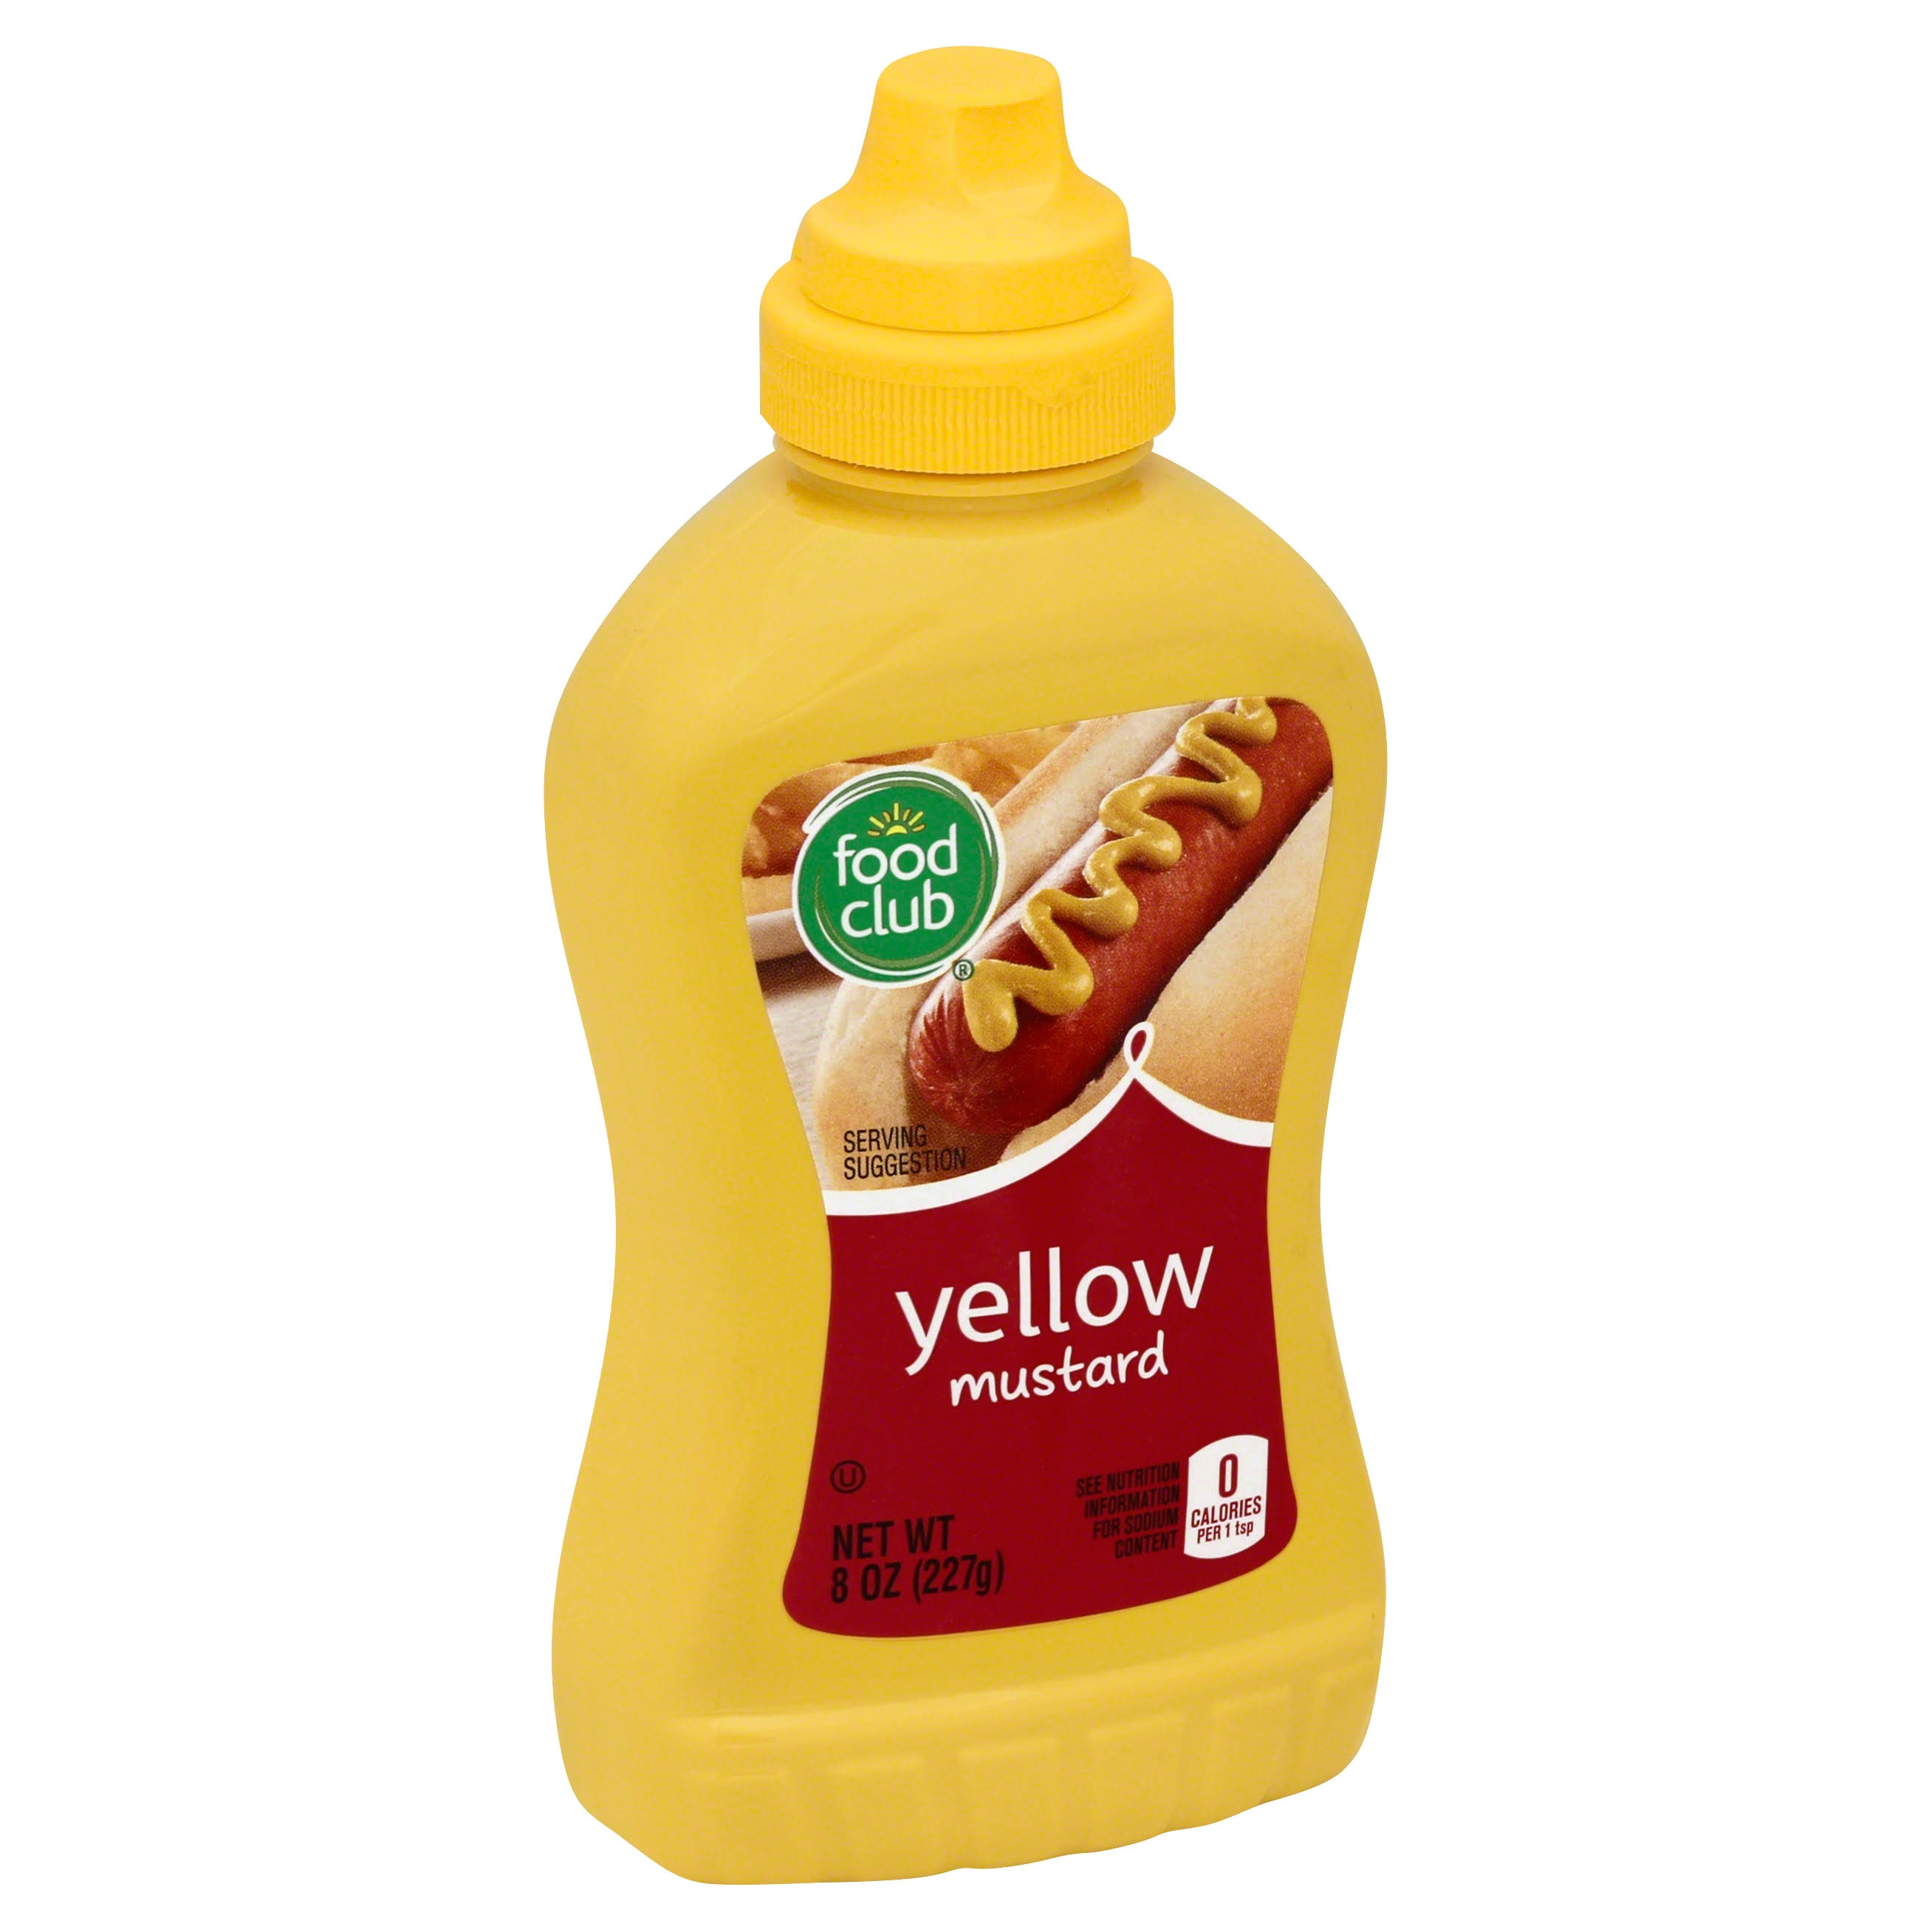 Food Club Yellow Mustard - 8oz